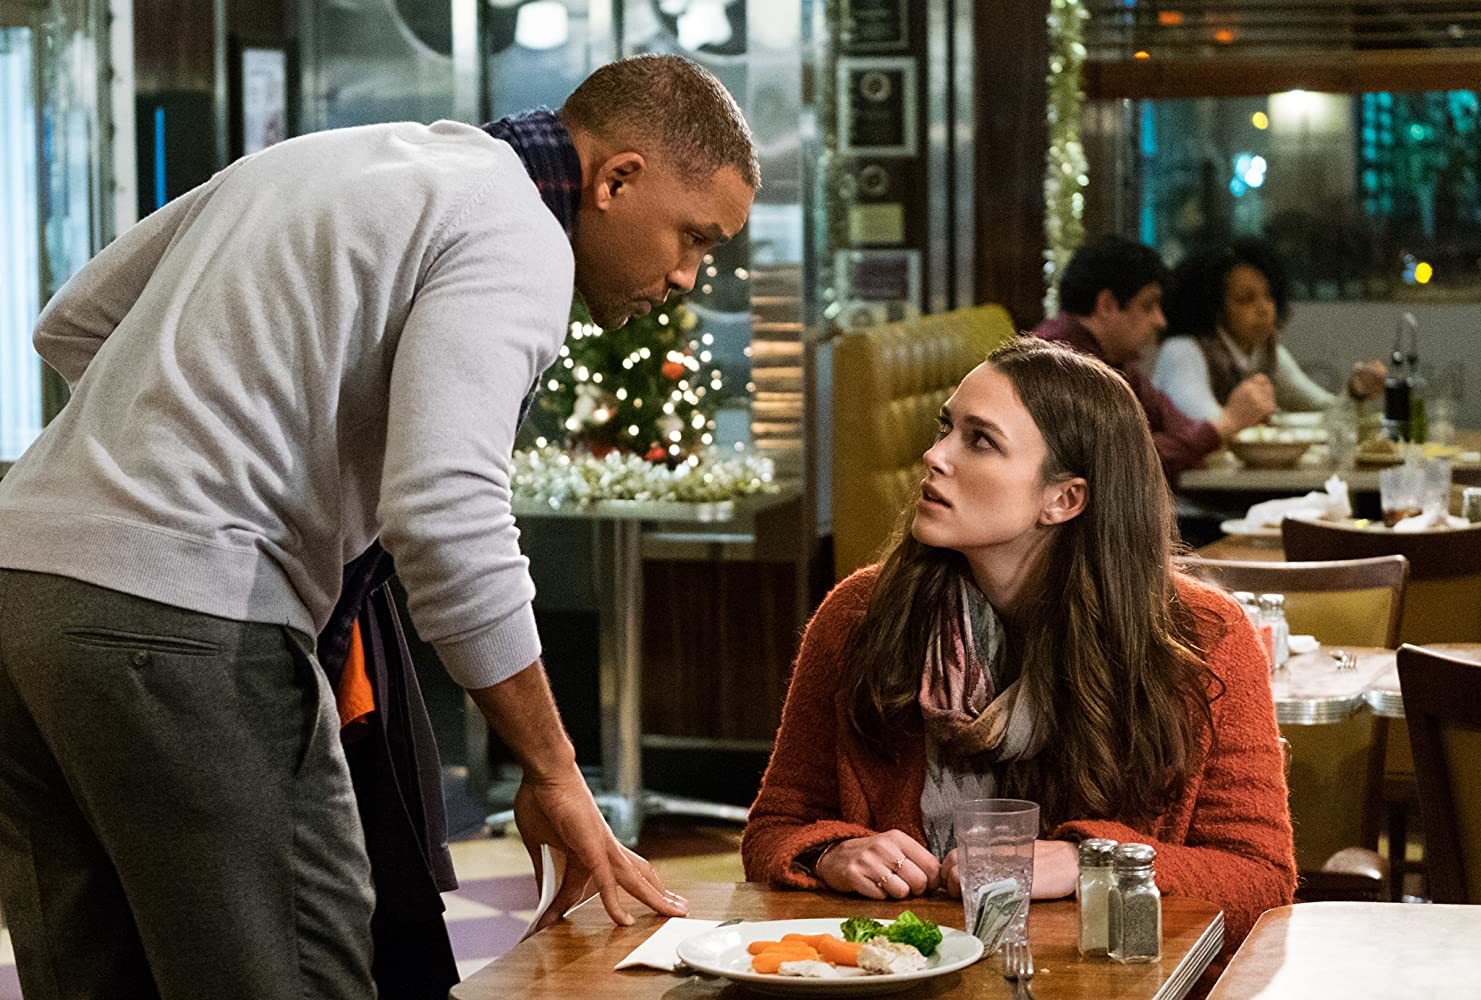 Will Smith and Keira Knightley in Collateral Beauty (2016)